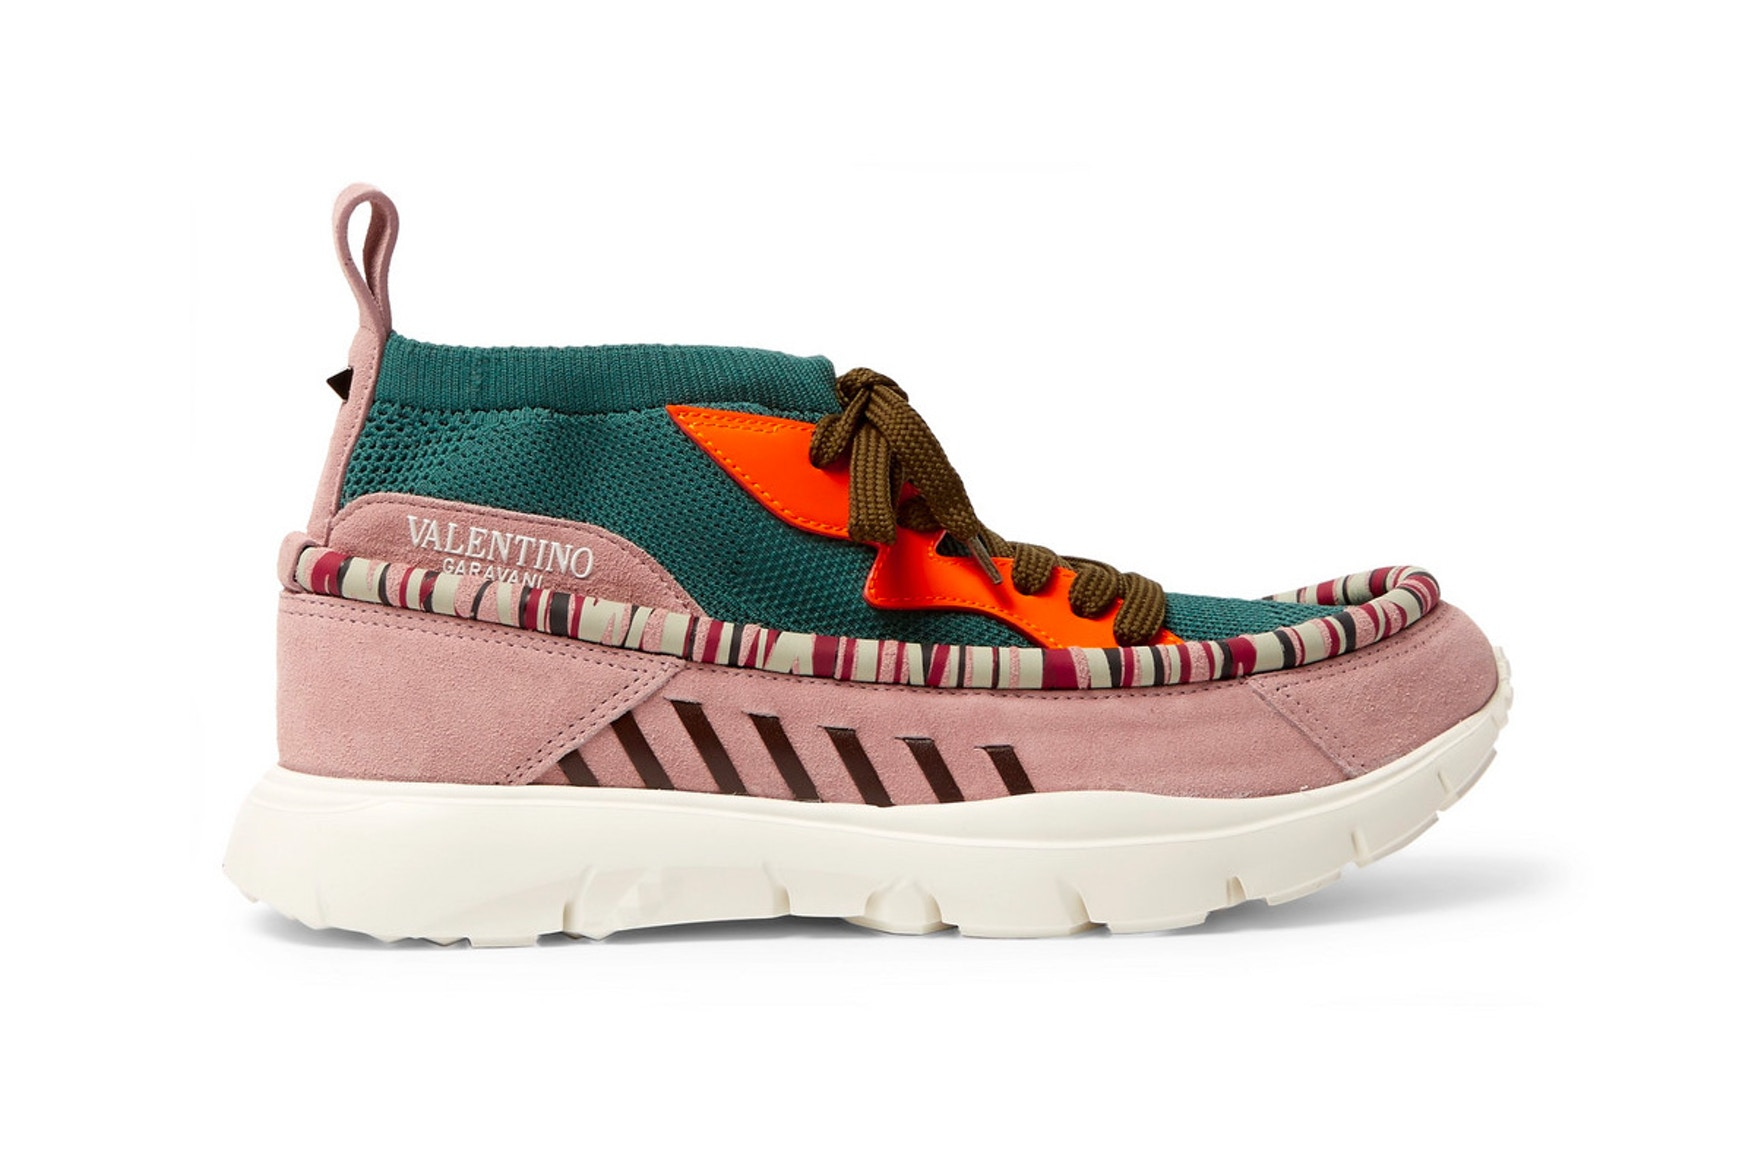 valentino-heroes-tribe-sneakers-release-4